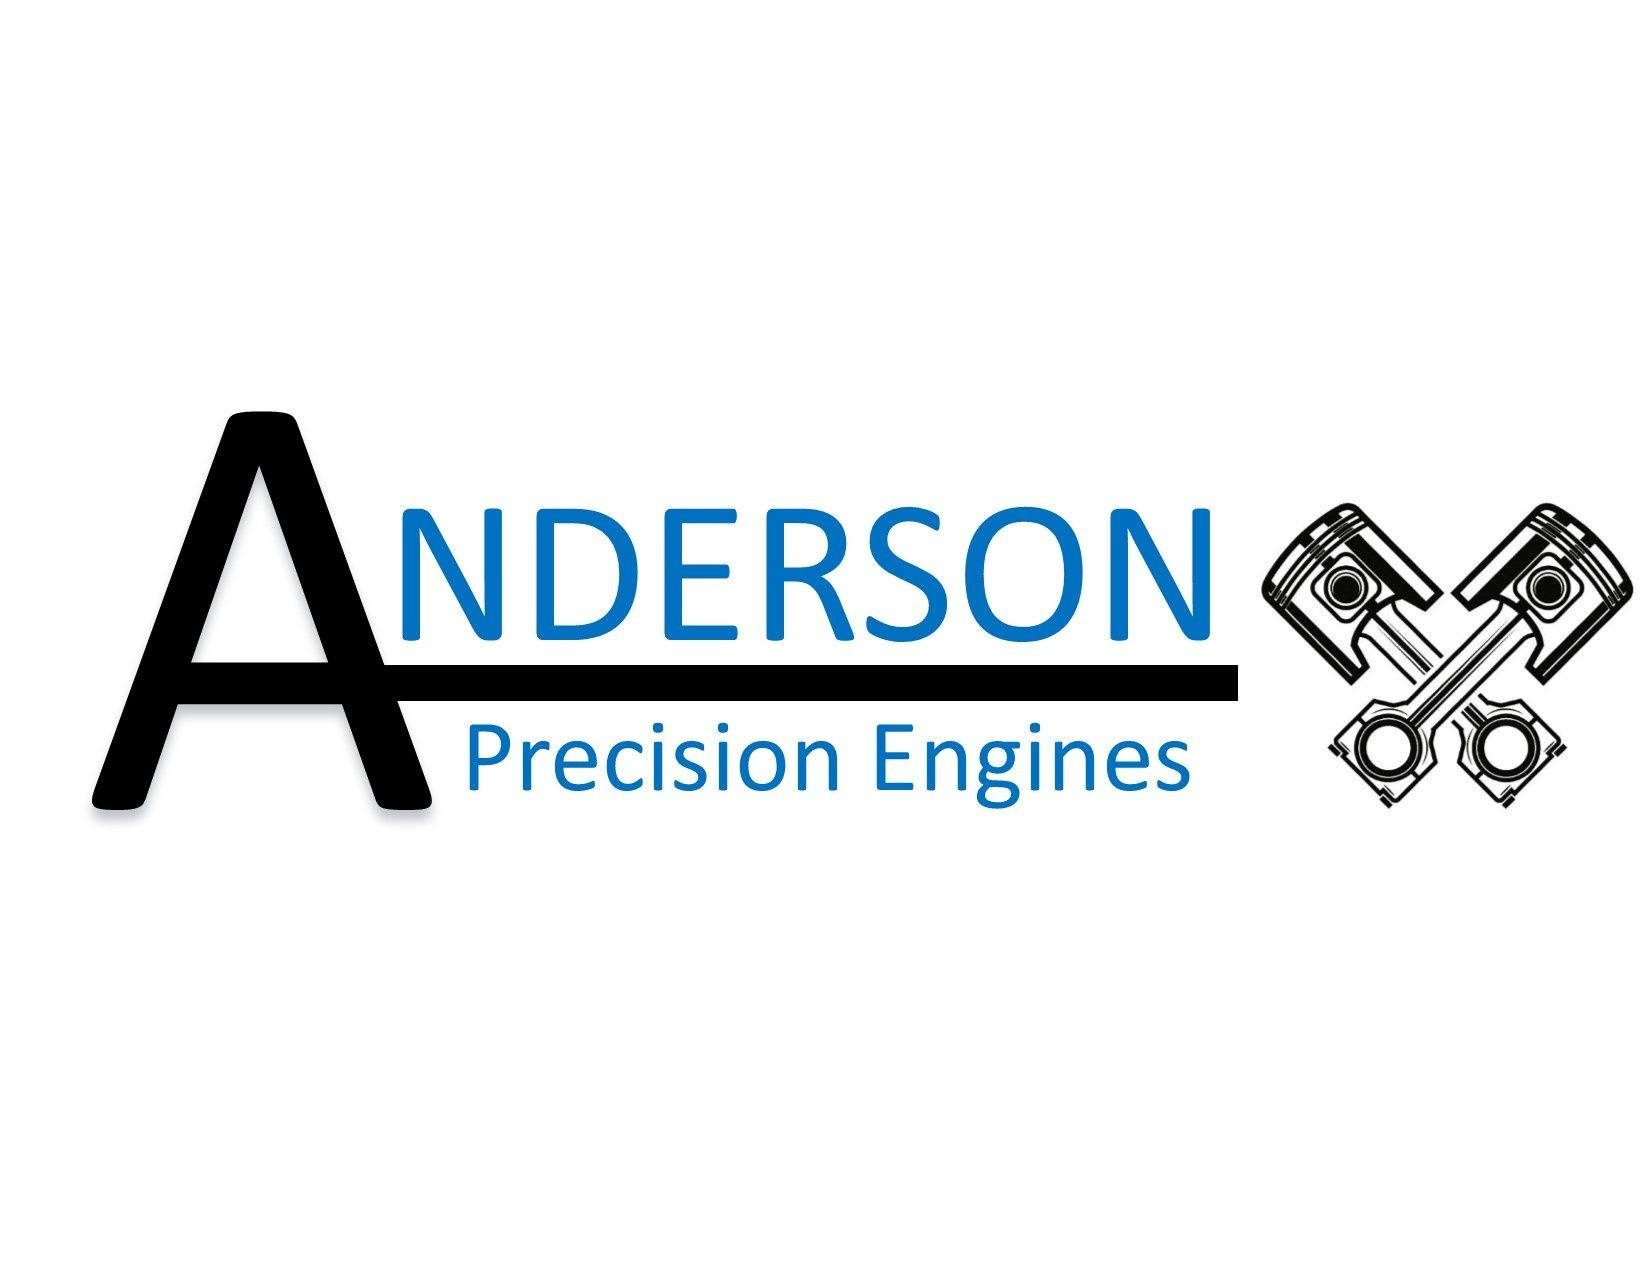 Anderson Precision Engines Ltd.